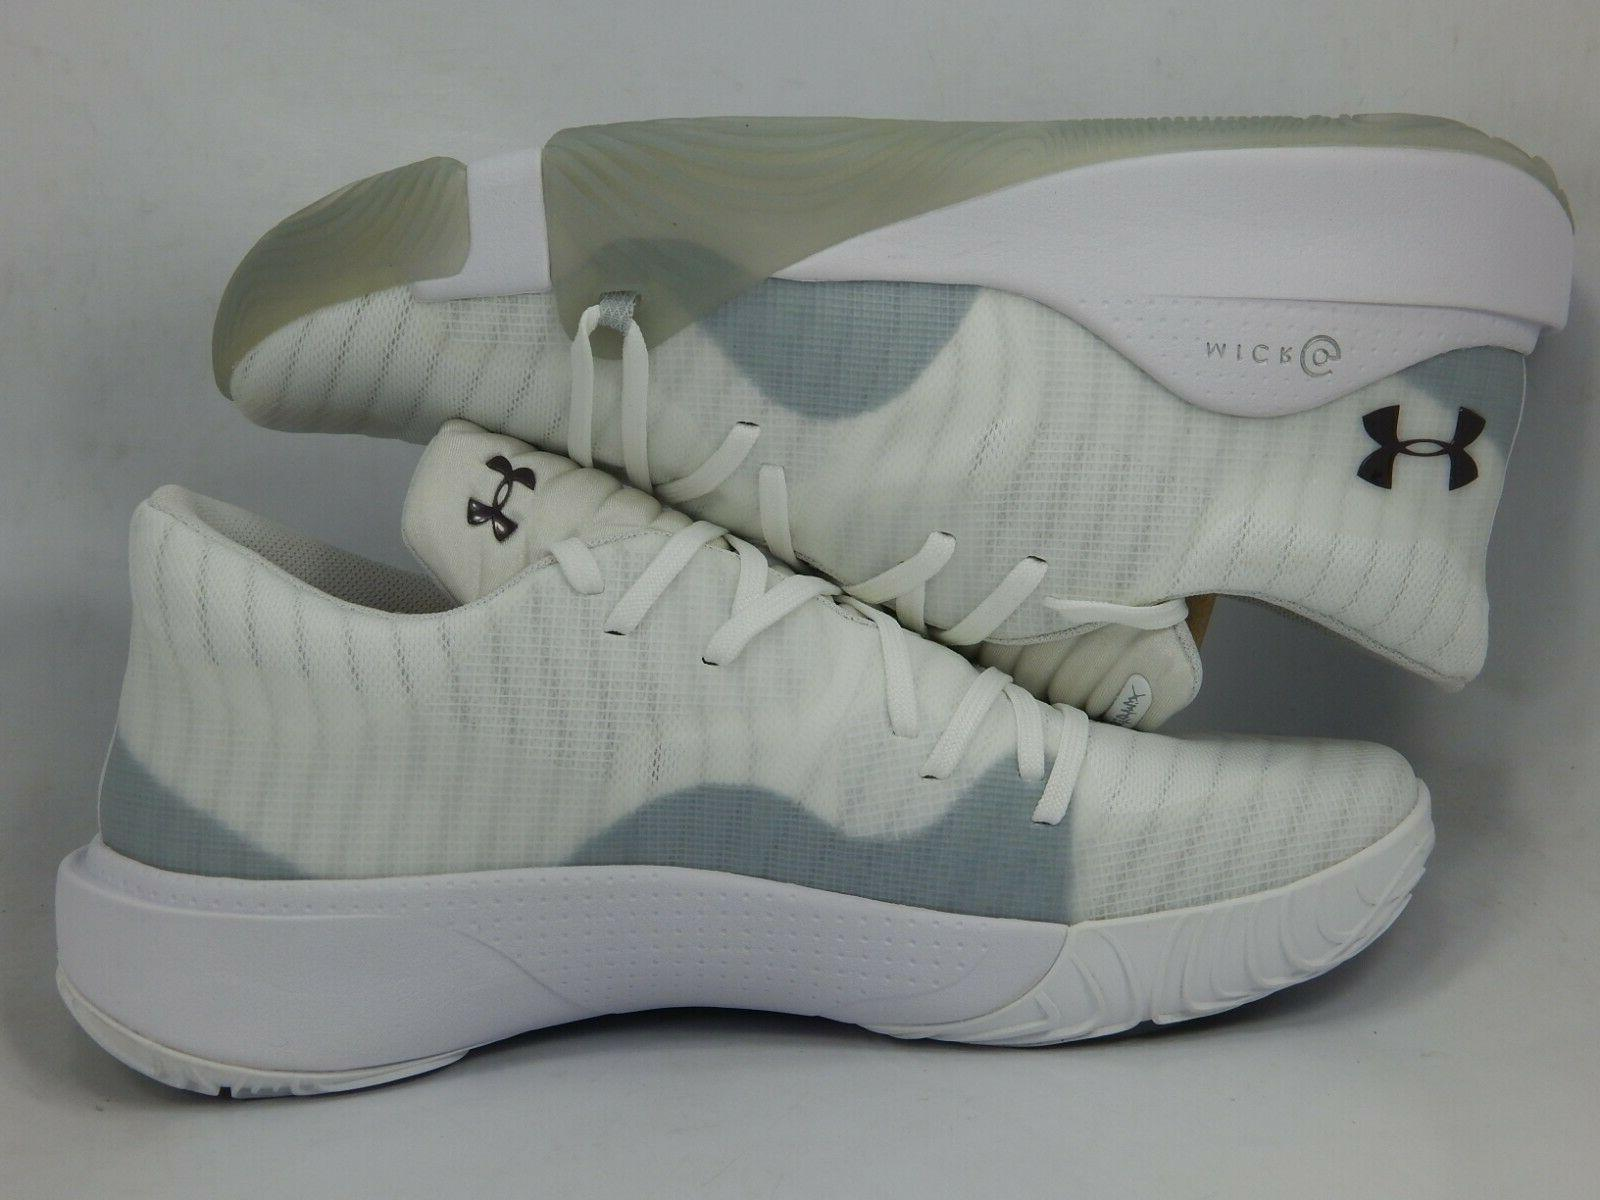 Under Spawn Low 11 Men's Basketball Shoes